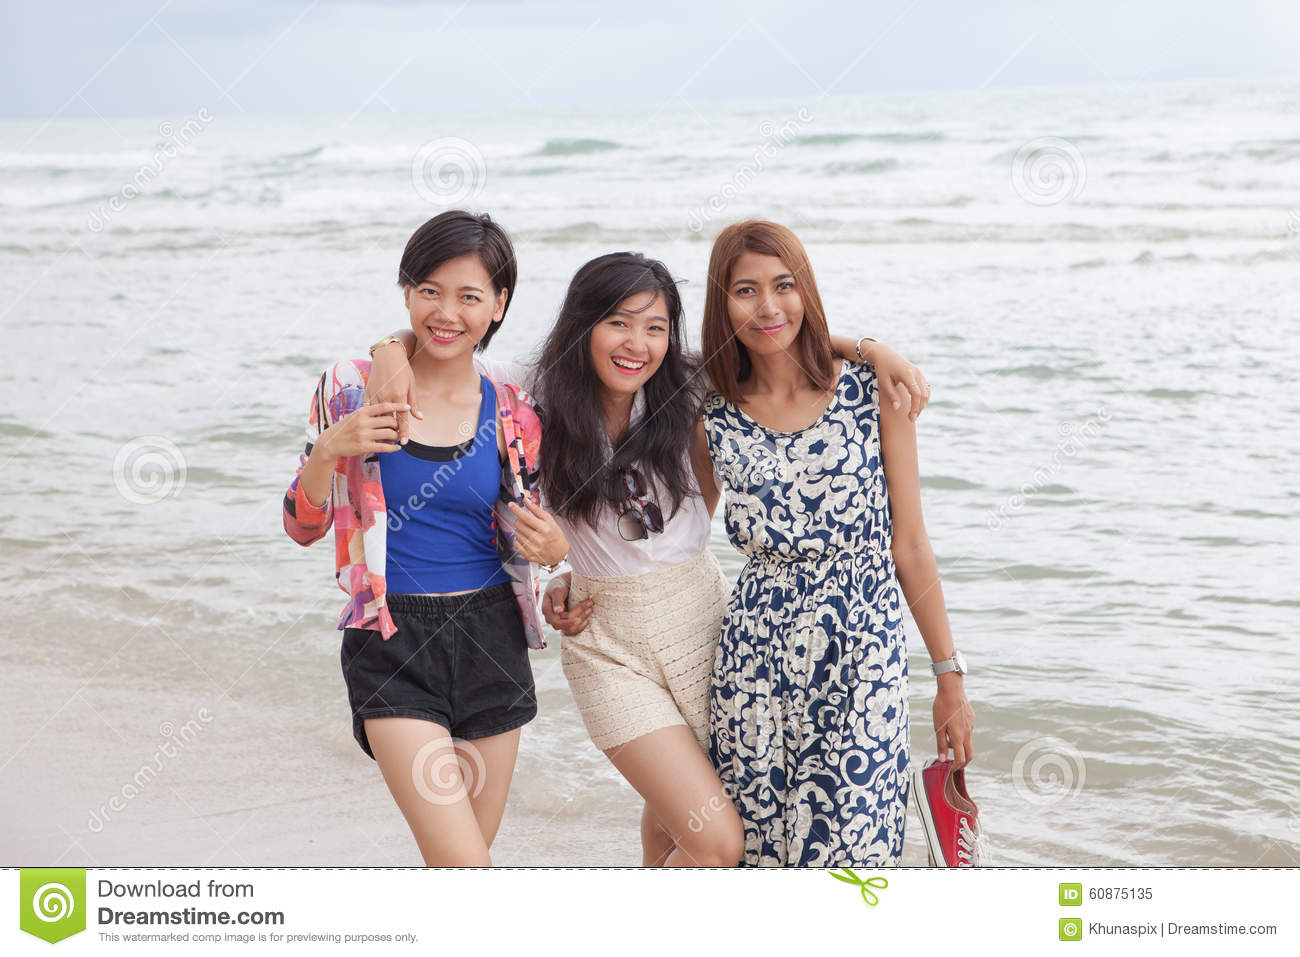 beach single asian girls Looking for asian women or asian men in virginia beach, va local asian dating service at idating4youcom find asian singles in virginia beach.